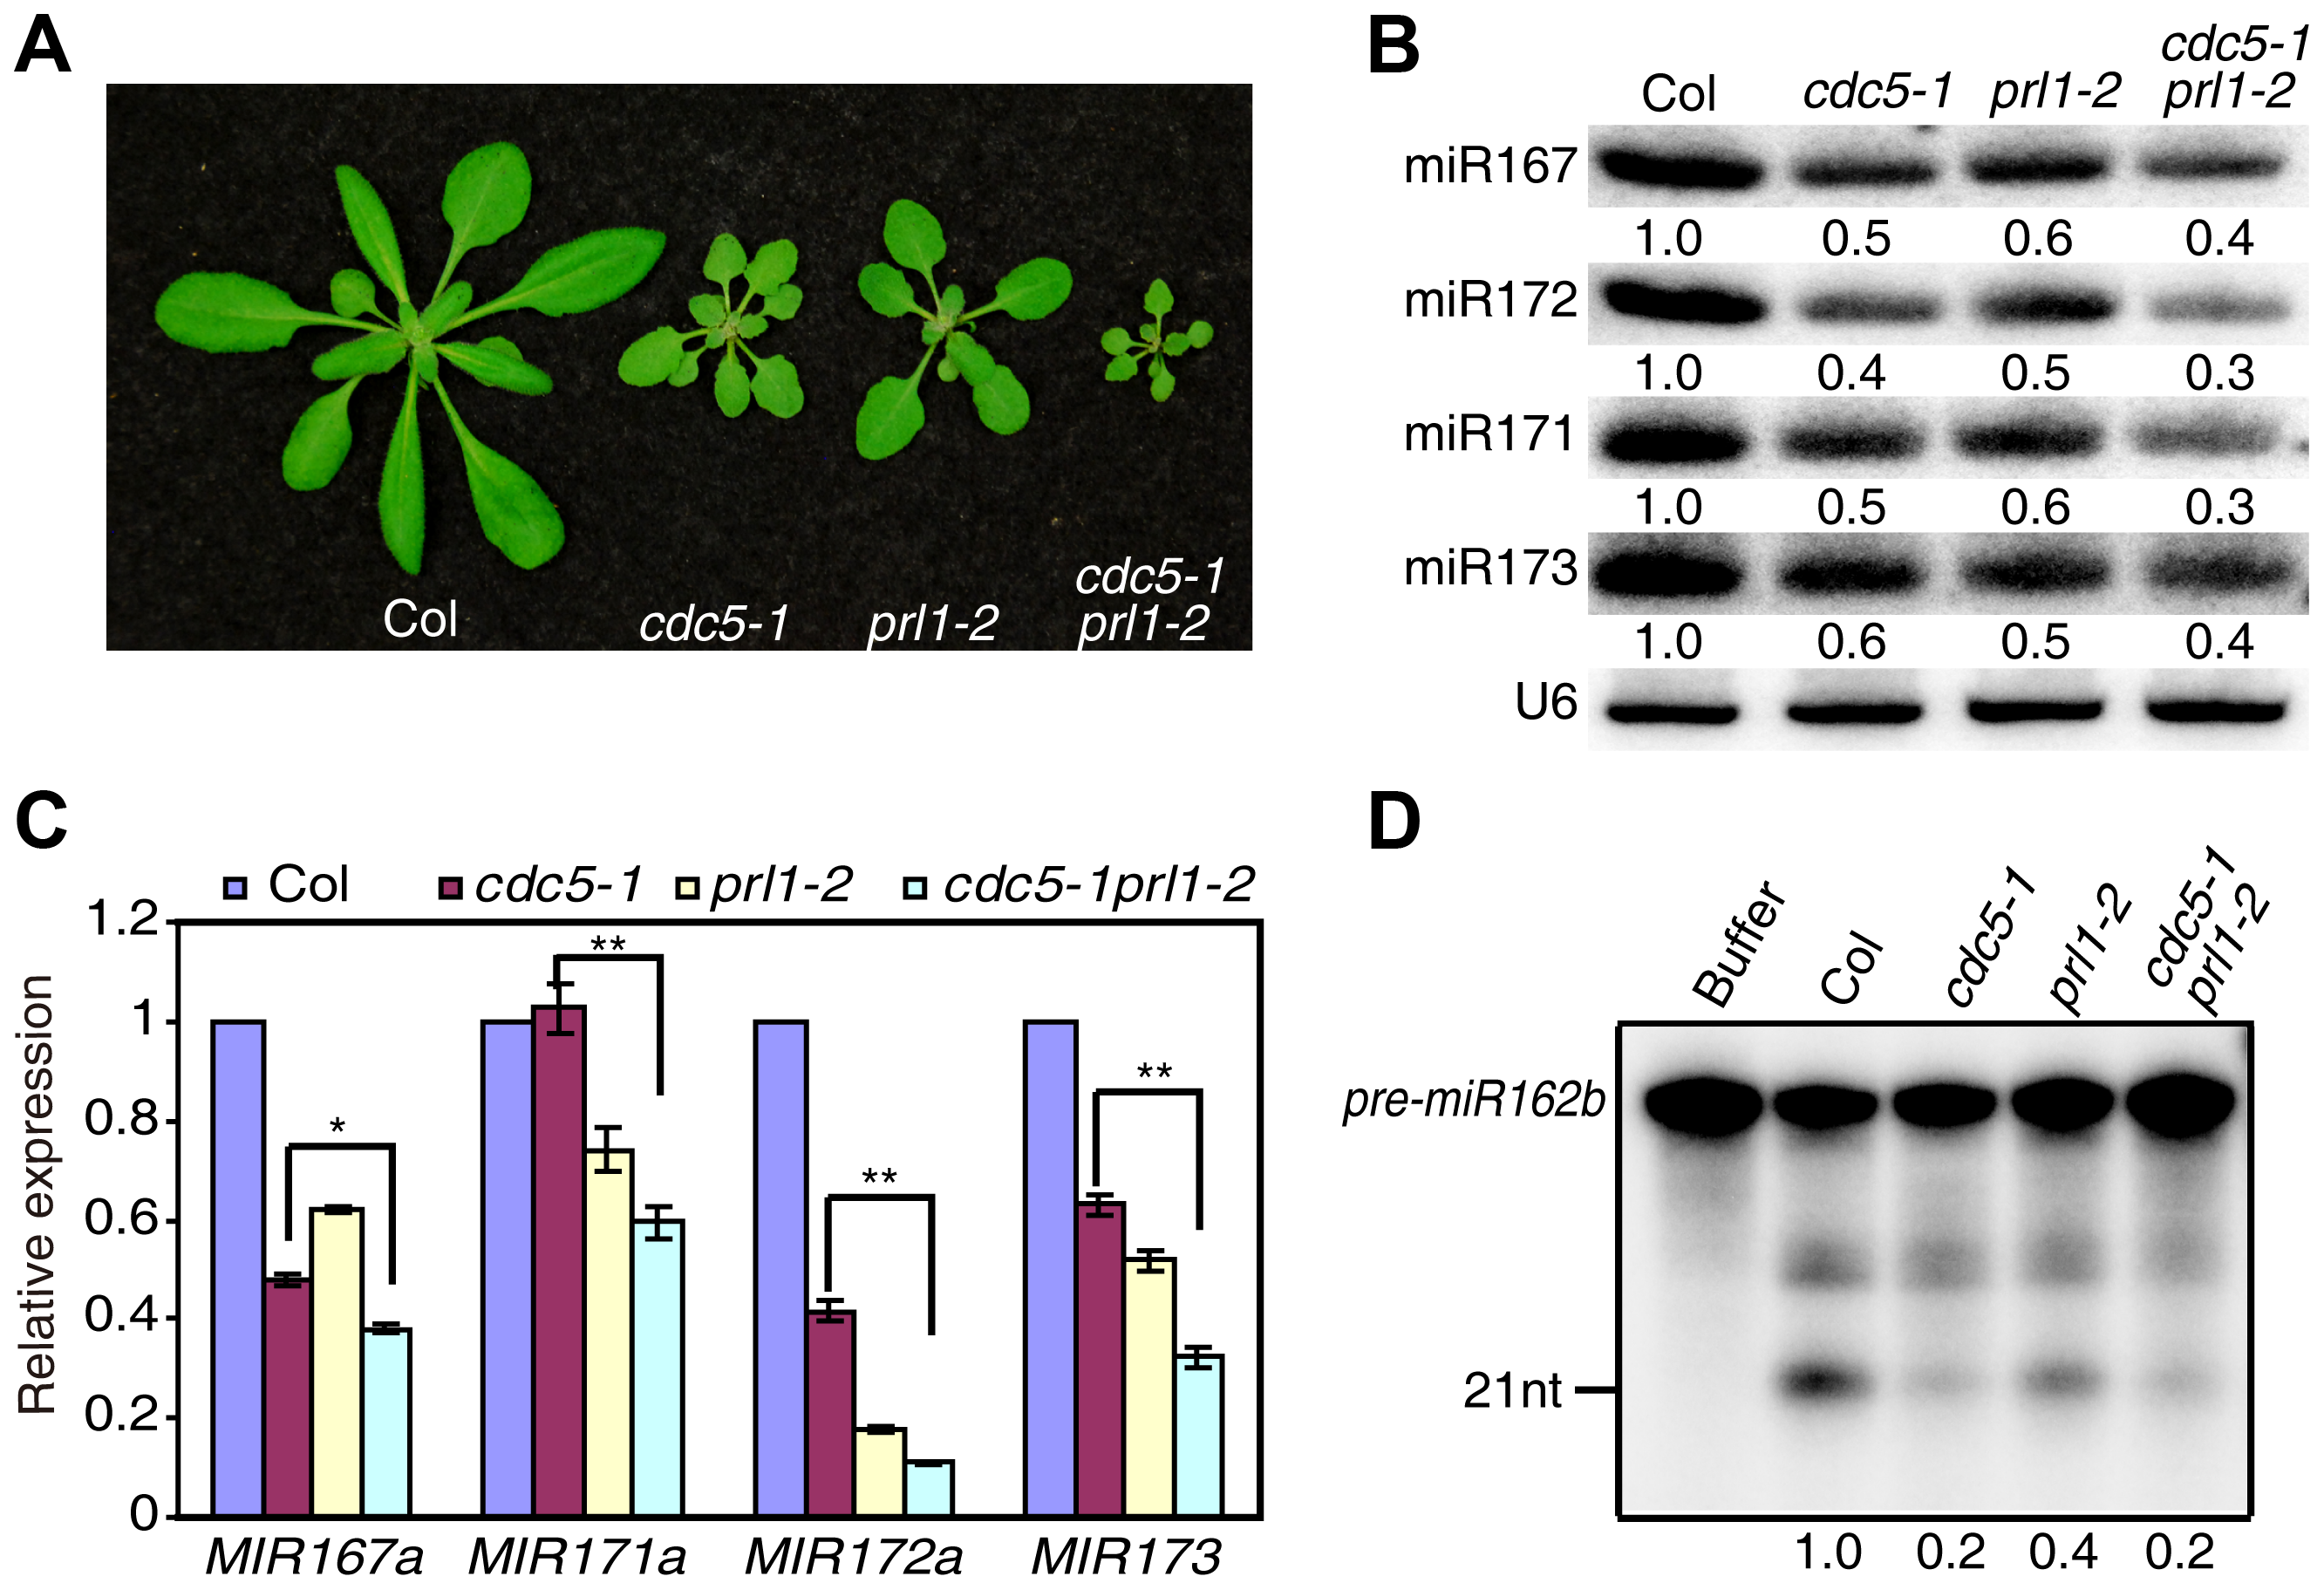 PRL1 and CDC5 synergistically regulate miRNA accumulation.